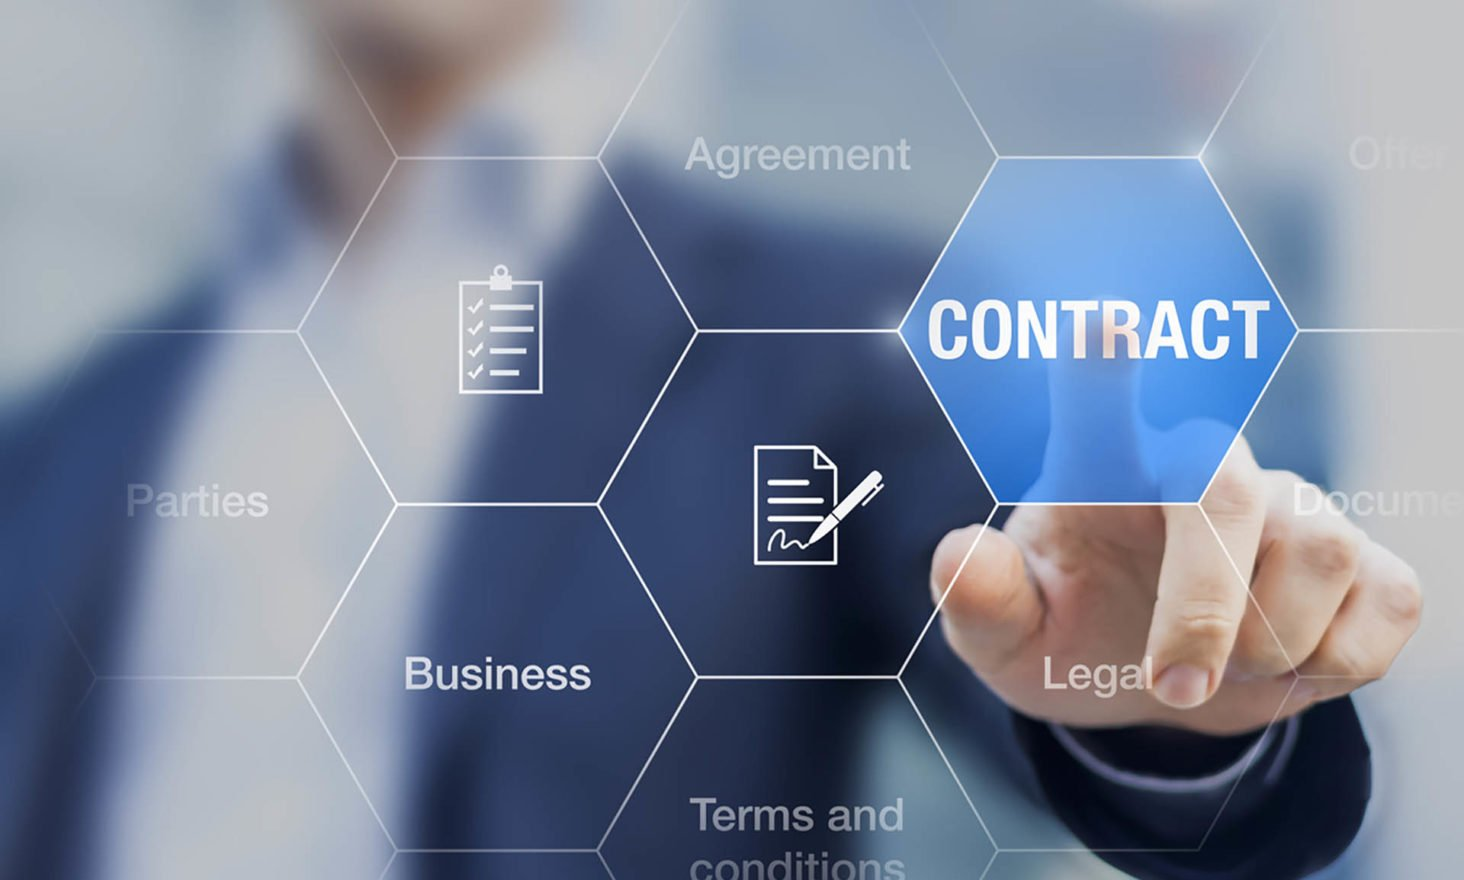 Smart Contracts are Seeping into U.S Law - Tennessee Passes Bill